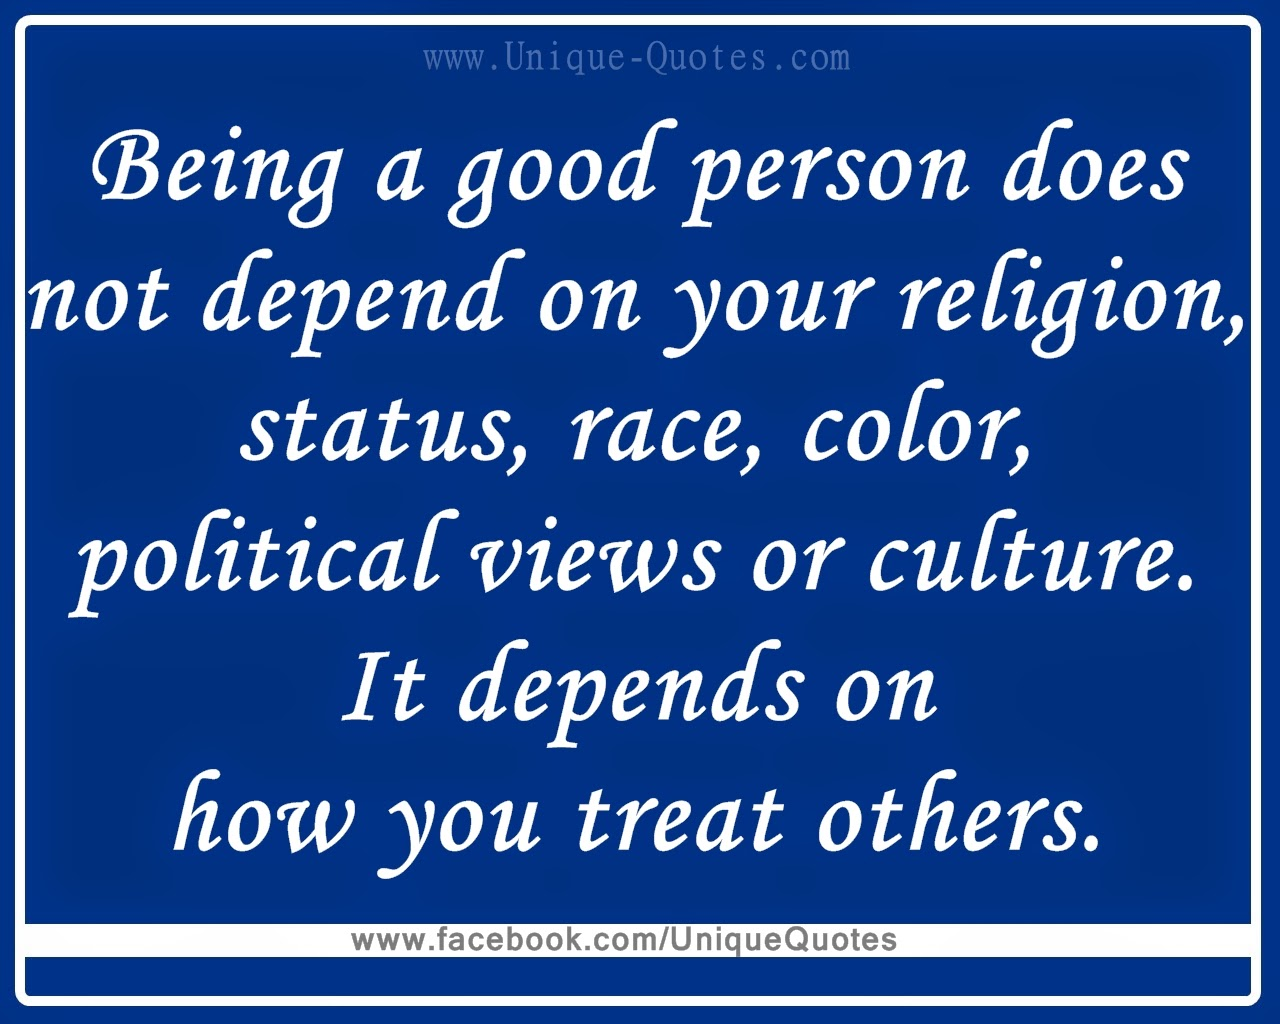 Good Person Quotes Being A Good Person Does Not Depend On Your Religion Status Race